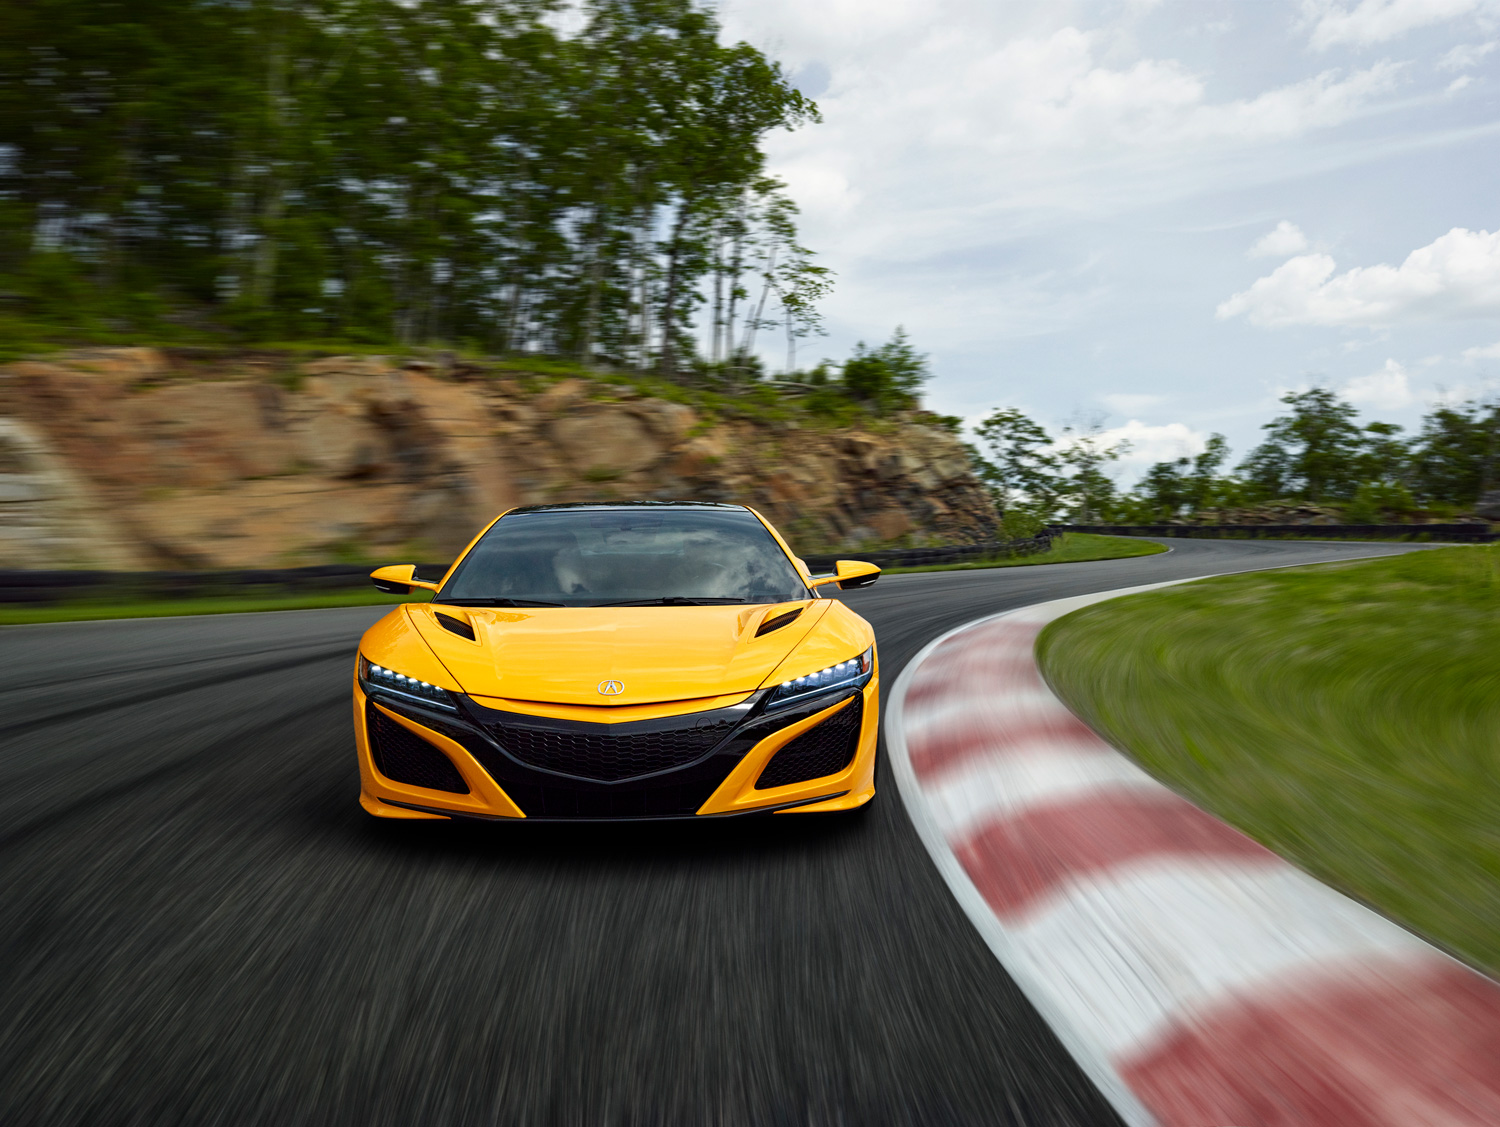 Acura adds honorary Indy Yellow Pearl paint to NSX supercar thumbnail